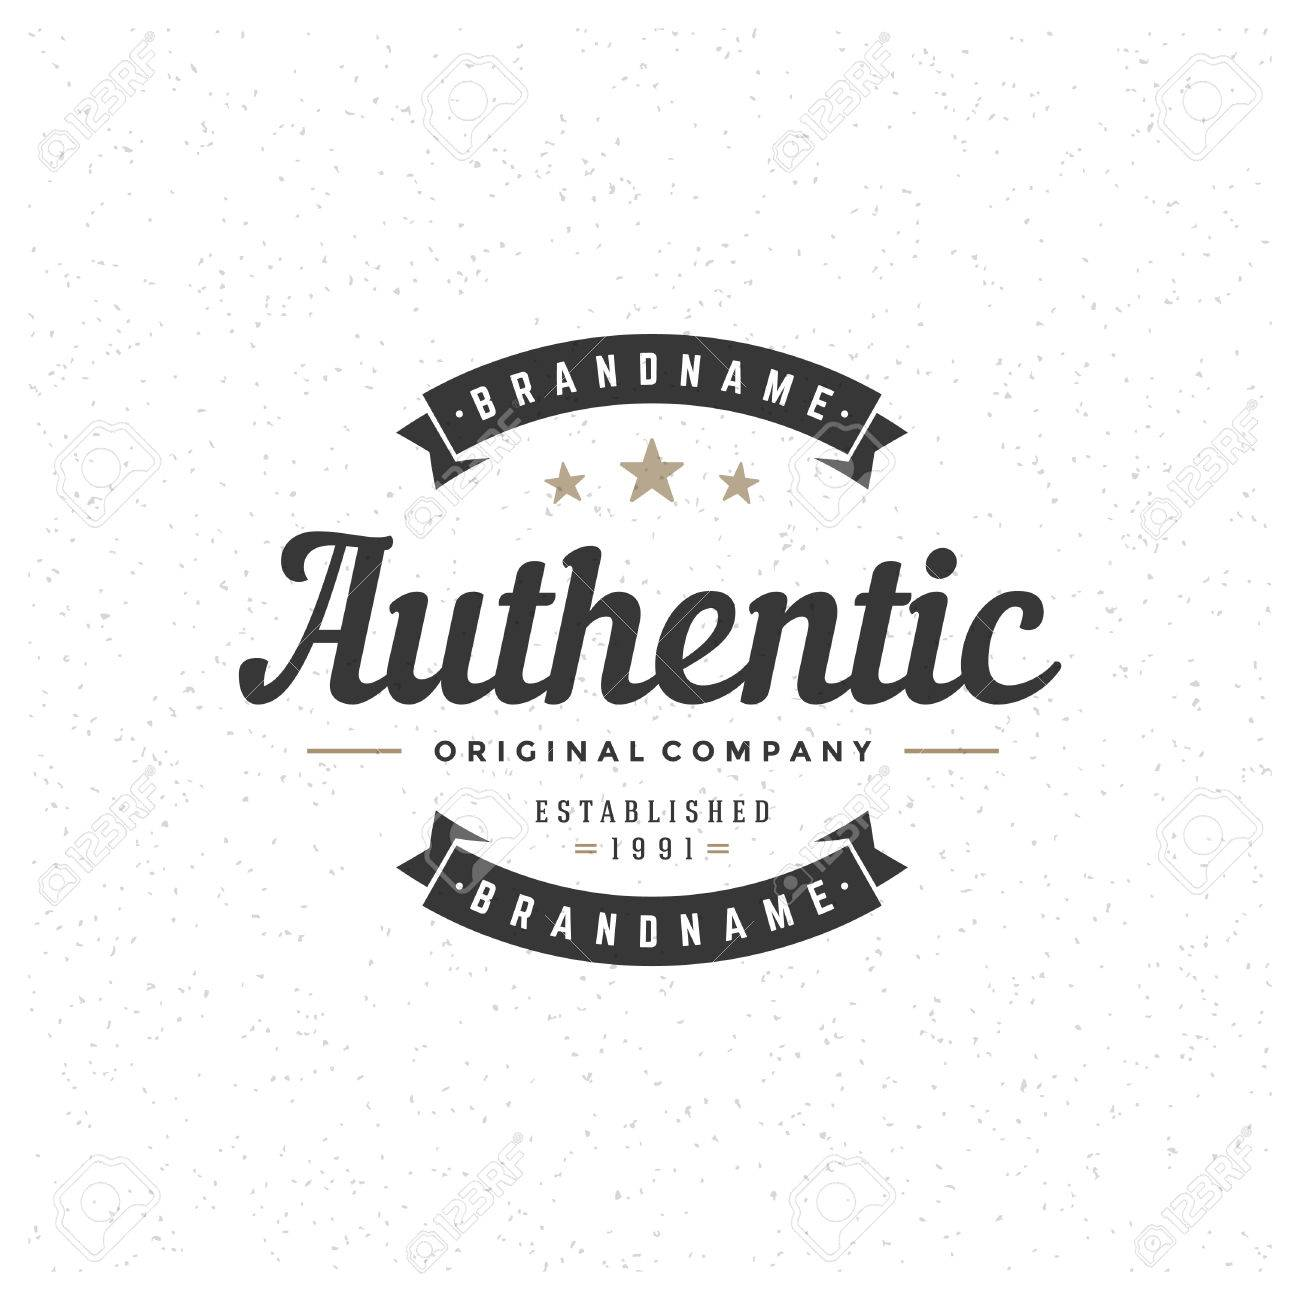 Retro Vintage Insignia, Logotype, Label or Badge Vector design element, business sign template. - 35279694